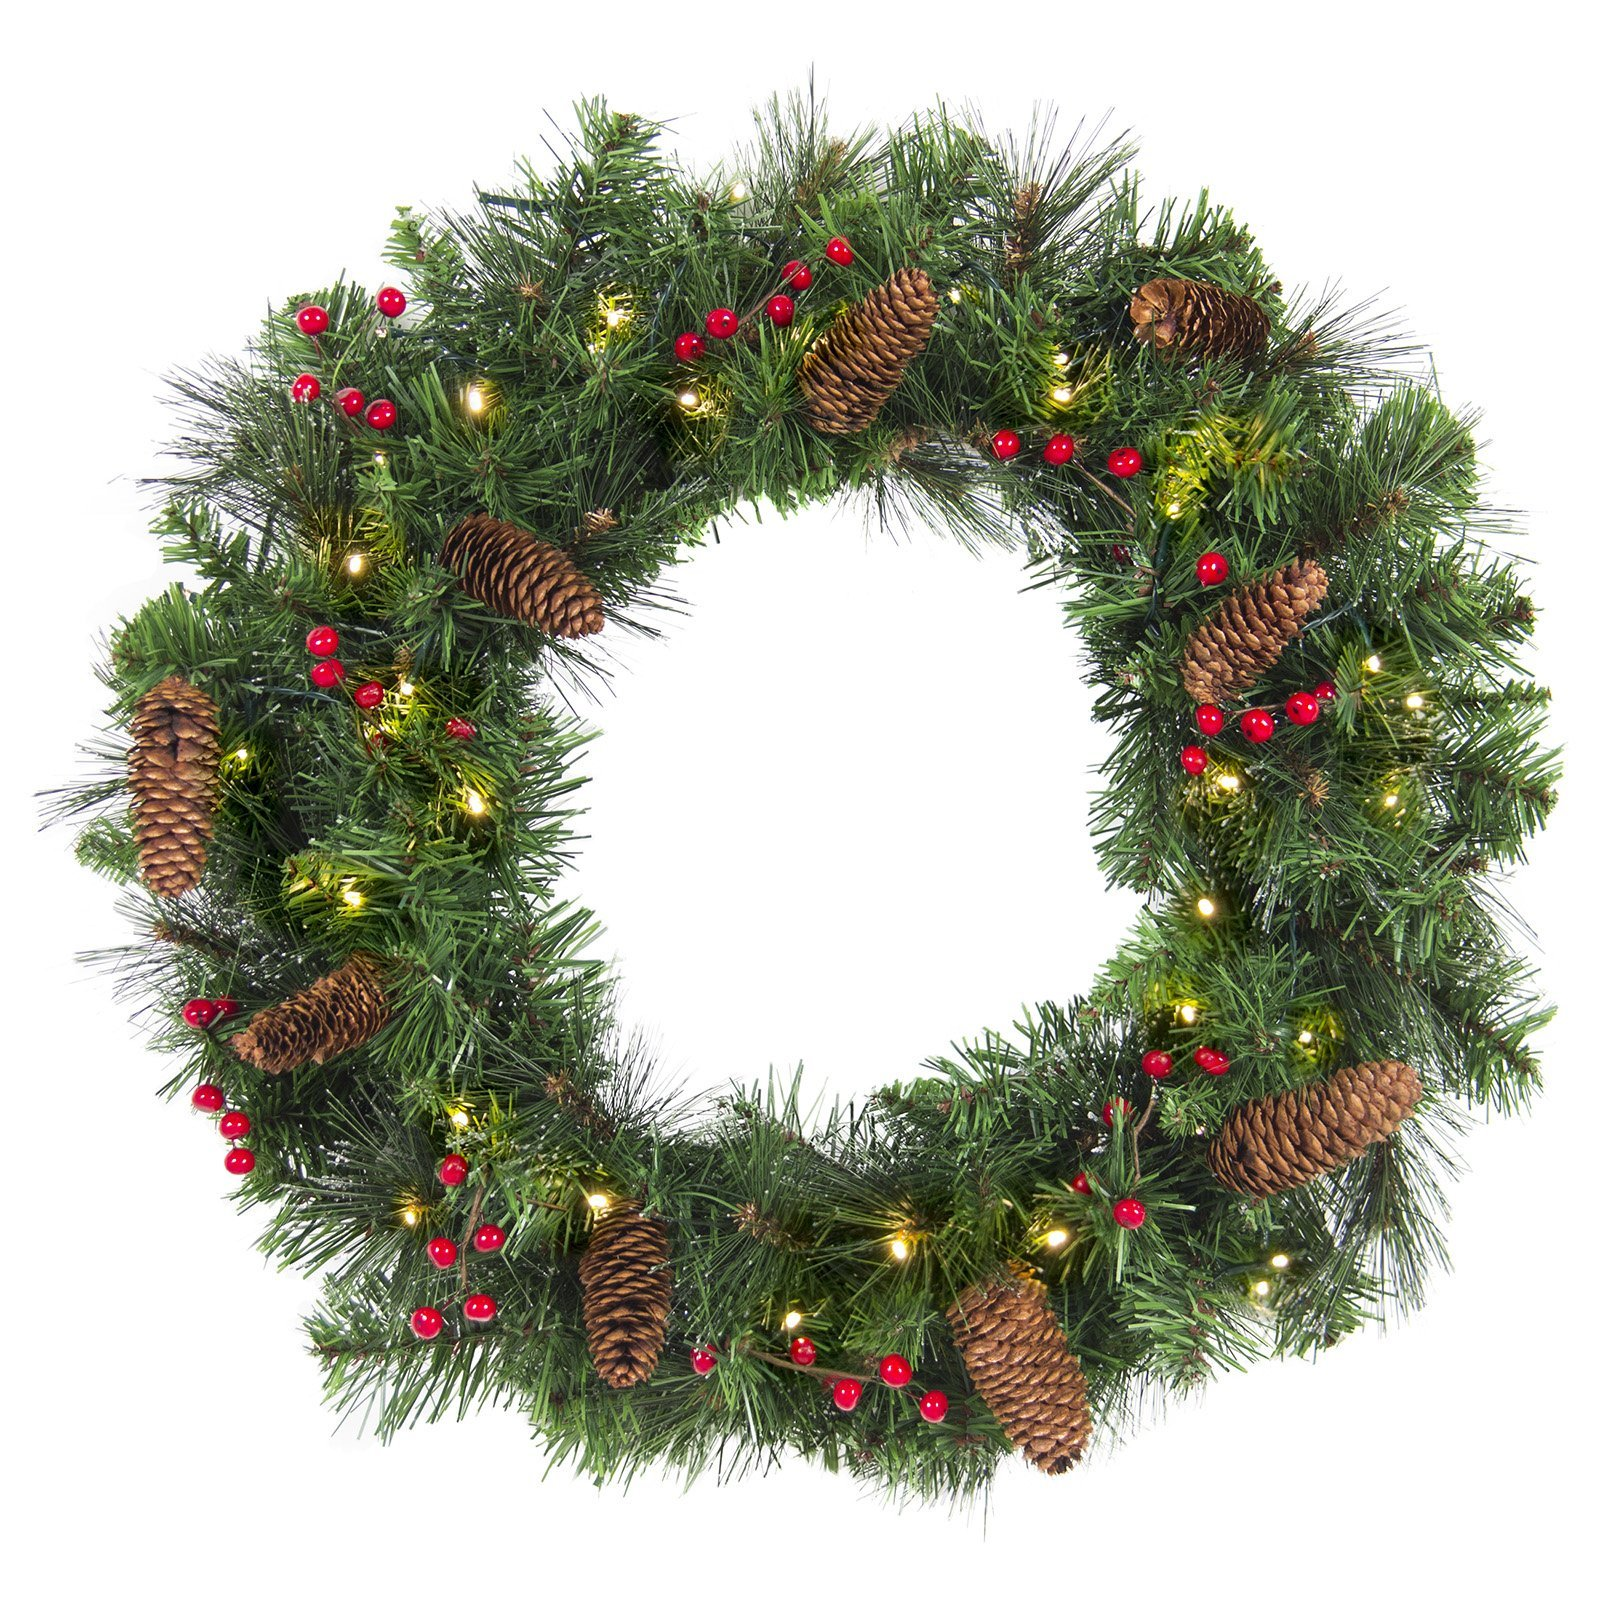 Best Choice Products 24'' Spruce Christmas Wreath W/ 50 Clear Lights, Silver Bristles, Pine Cones, Red Berries